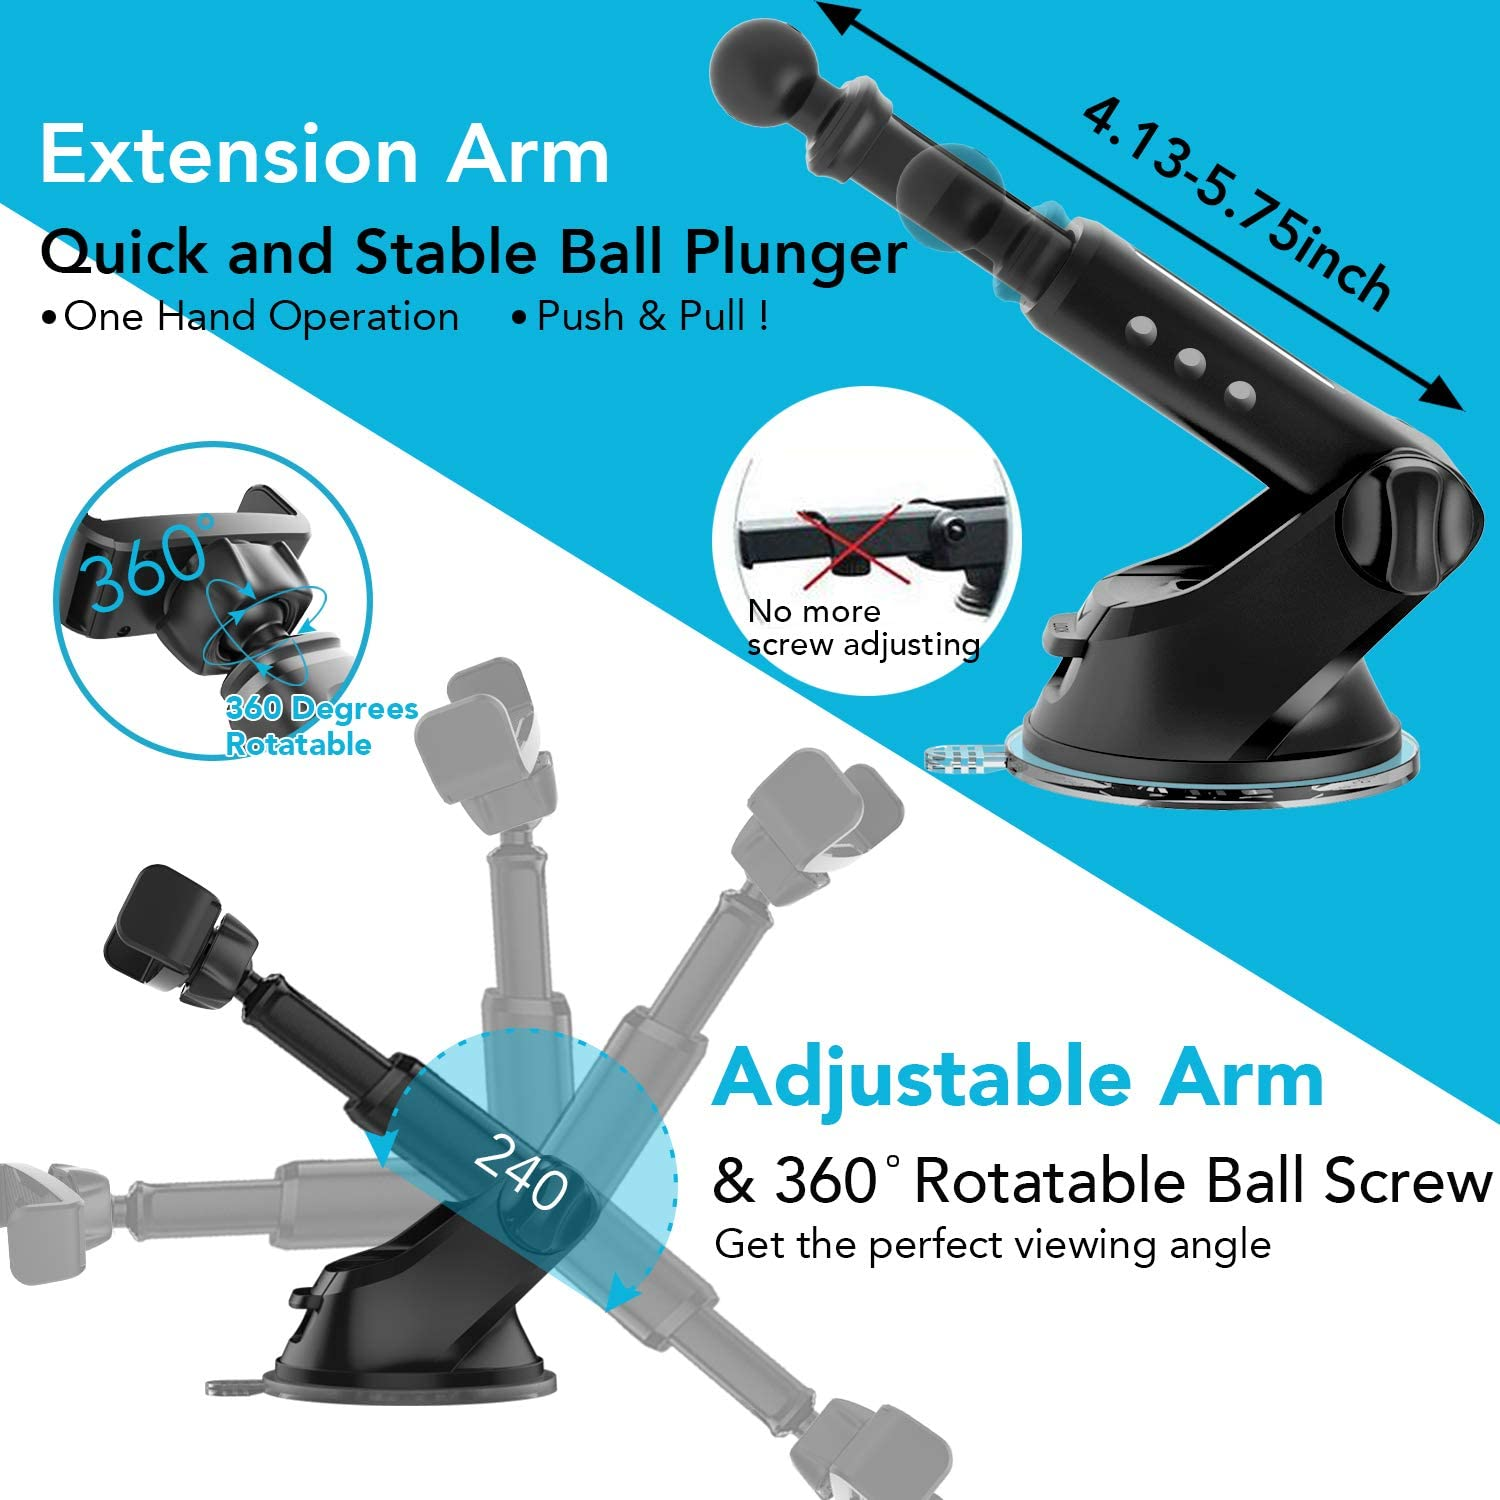 Phone Holder for Car APPS2Car Universal Strong Suction Cup Phone Mount Windshield /& Dashboard Cell Phone Car Mount with Expandable Spring-Load Grip Strong Hold Grip for Cell Phones